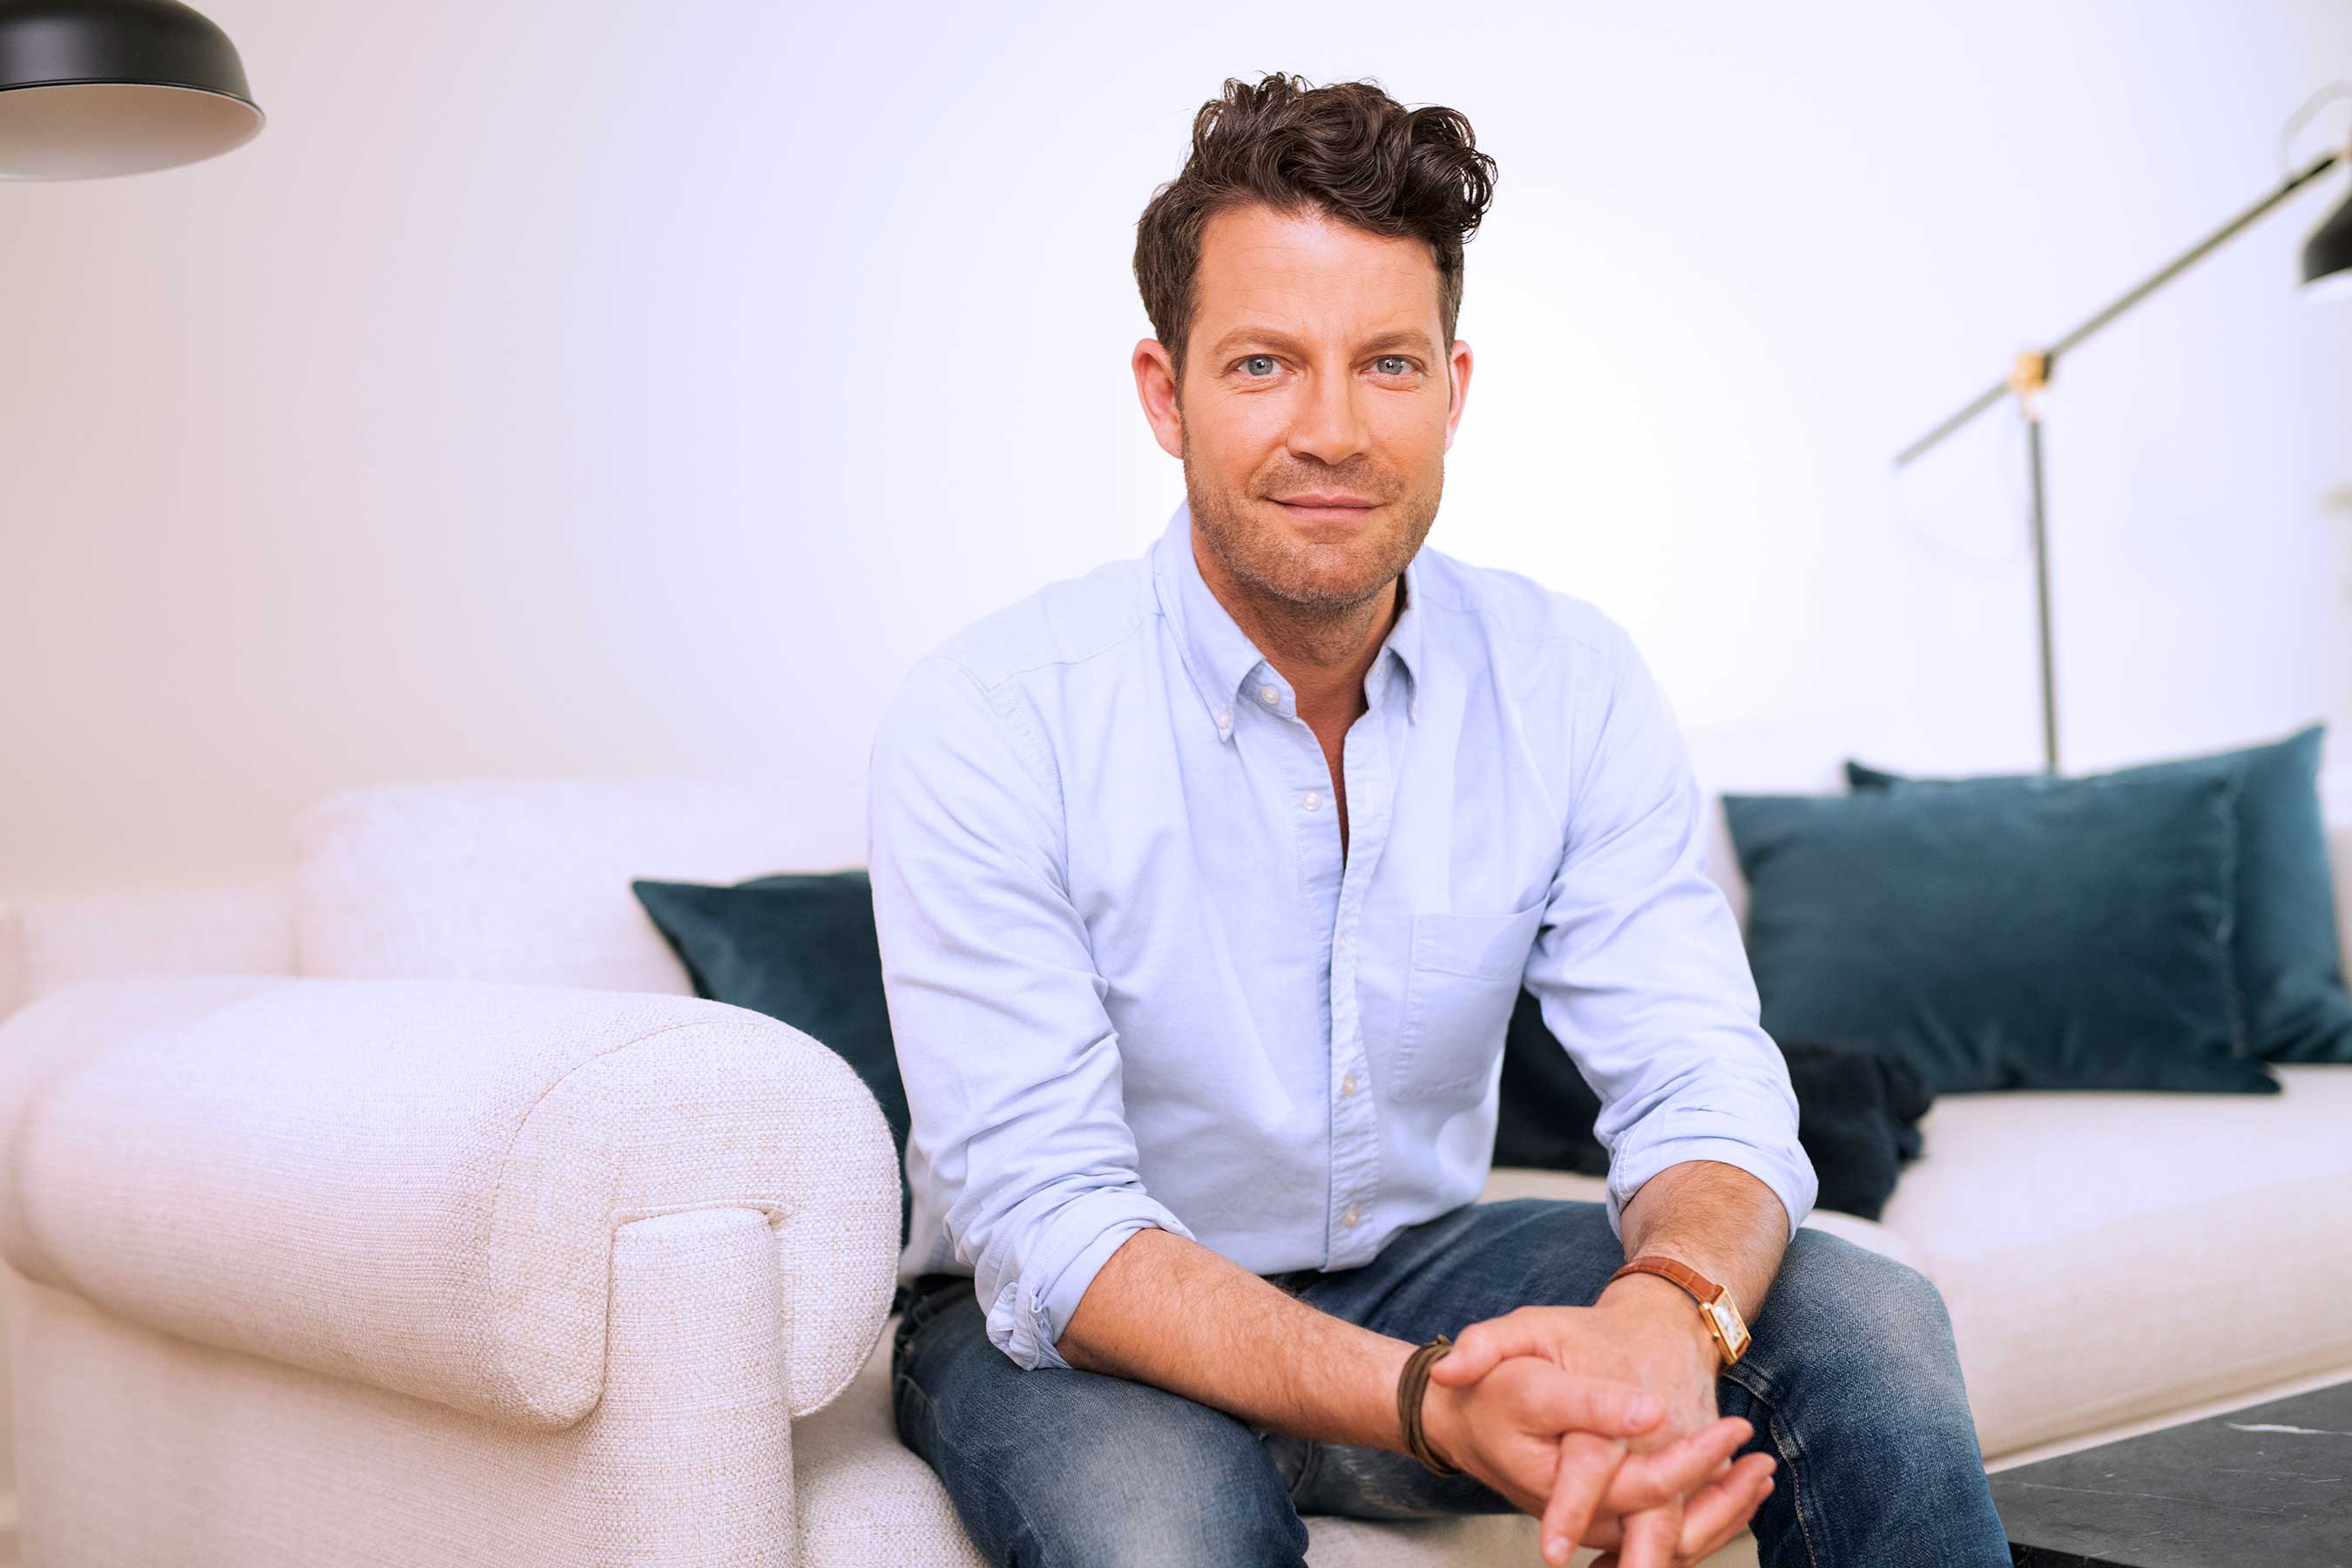 Novartis teams up with celebrity interior designer Nate Berkus to launch My Home in Sight. Sign up at MyHomeInSightKit.com.